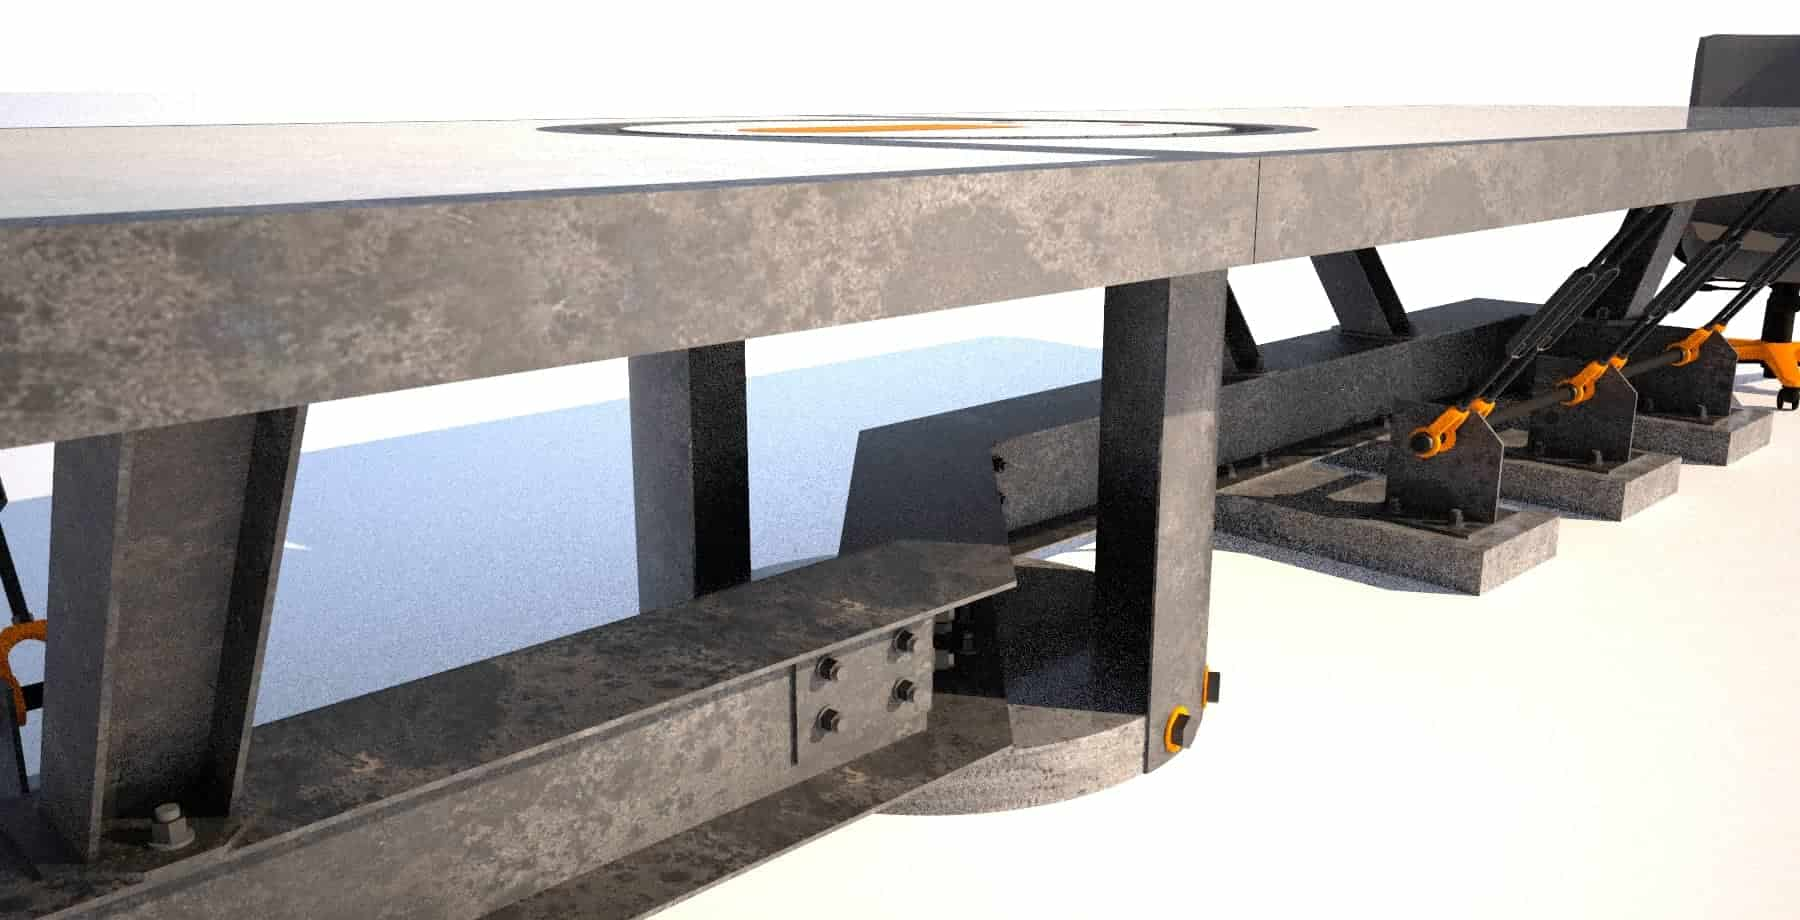 7 Steel and concrete conference room table, base angle view, Designs by Rudy (6)